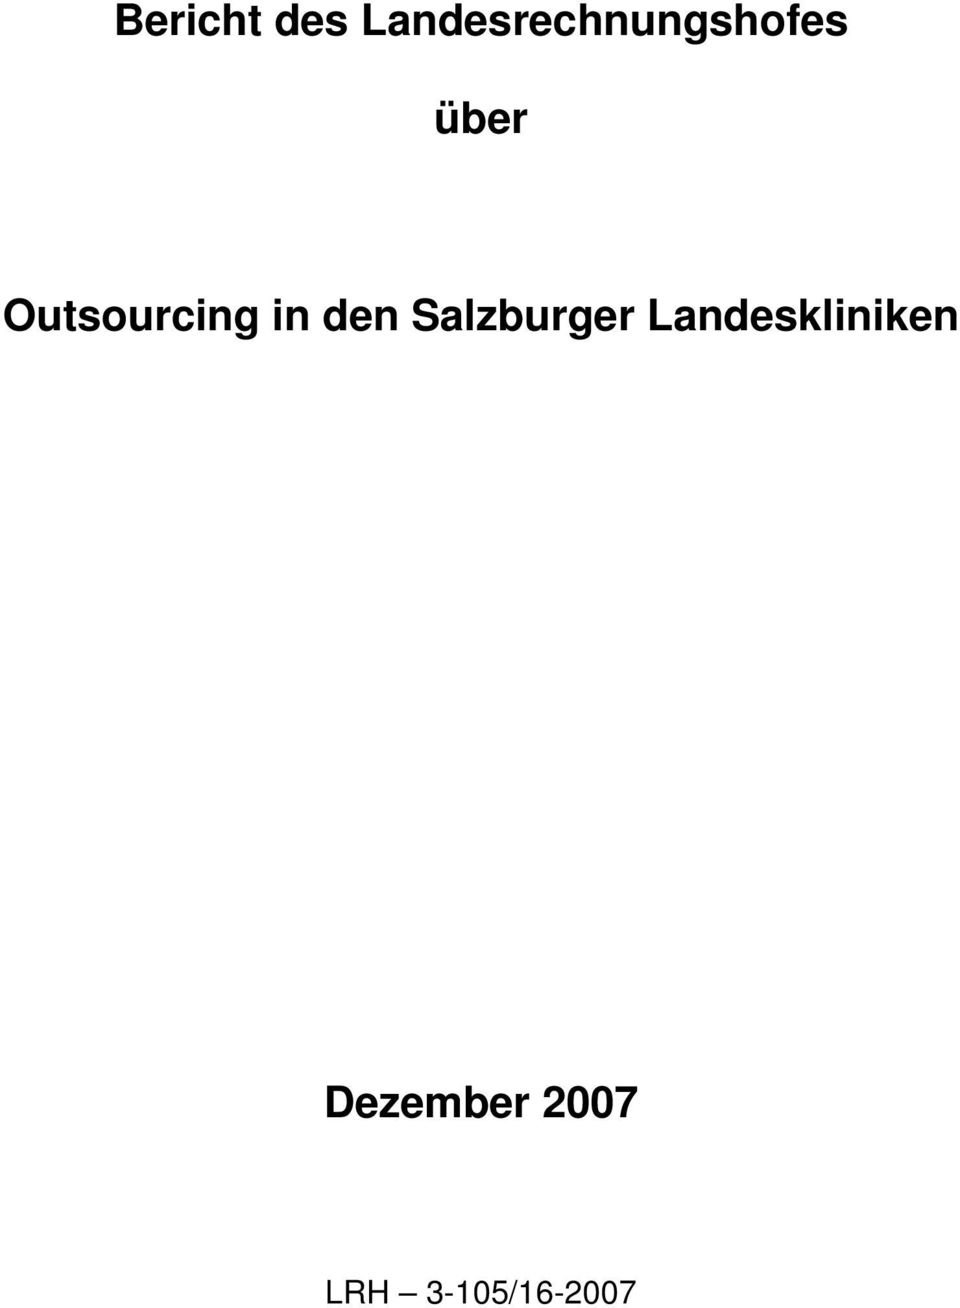 Outsourcing in den